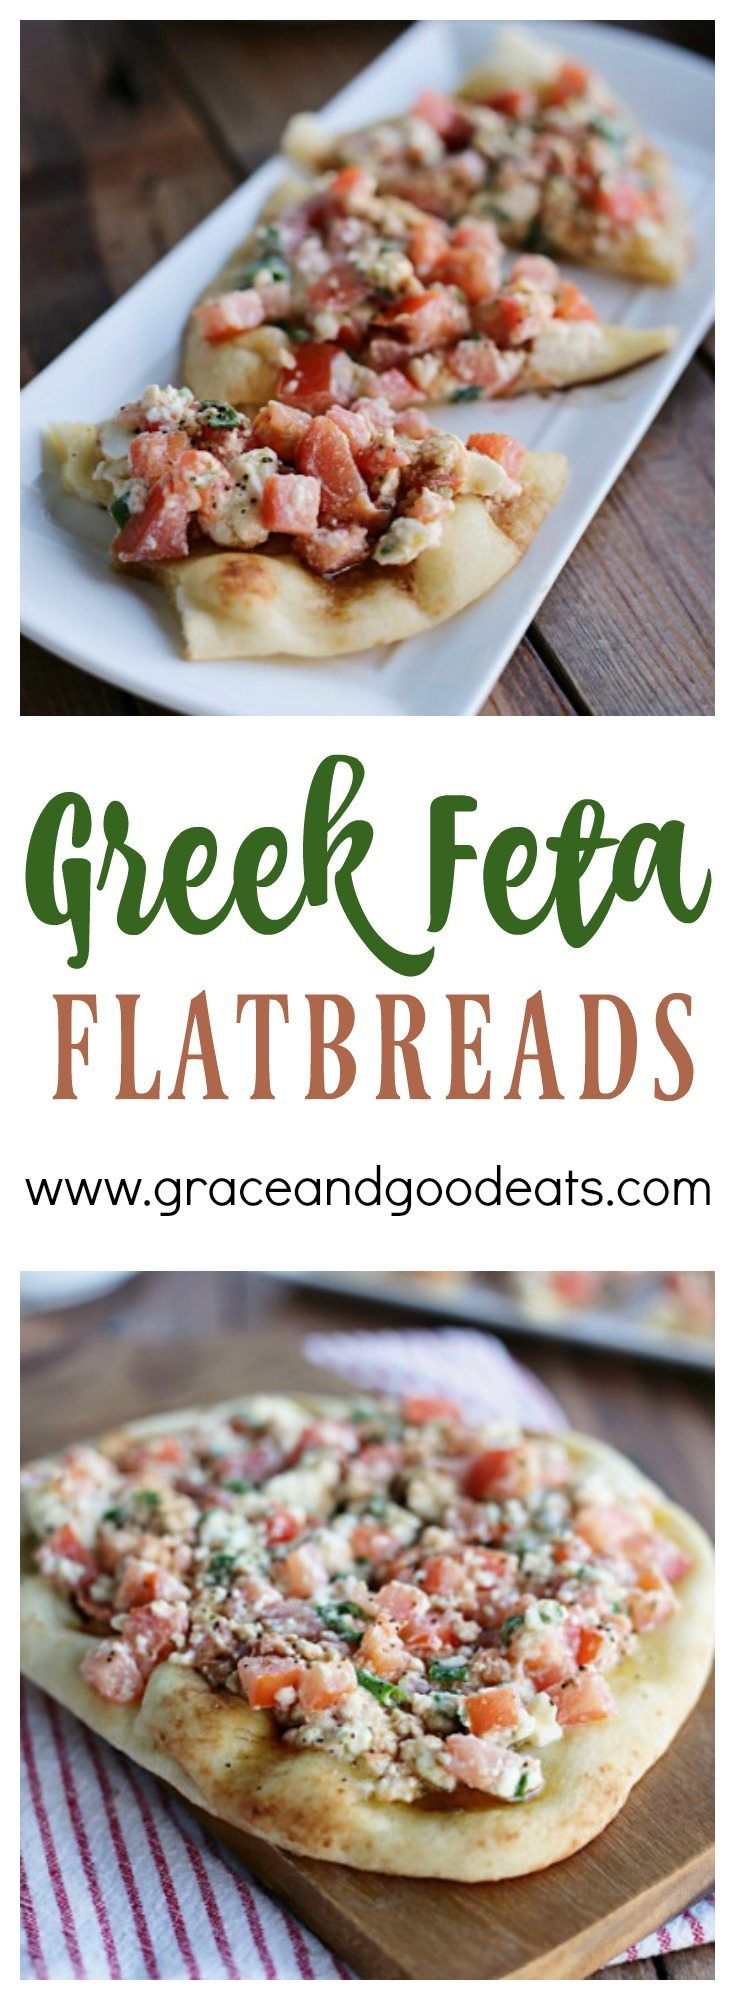 Best 25 best greek food ideas on pinterest recipes with chicken this greek feta flatbread is like heaven on a plate would be great for game forumfinder Images